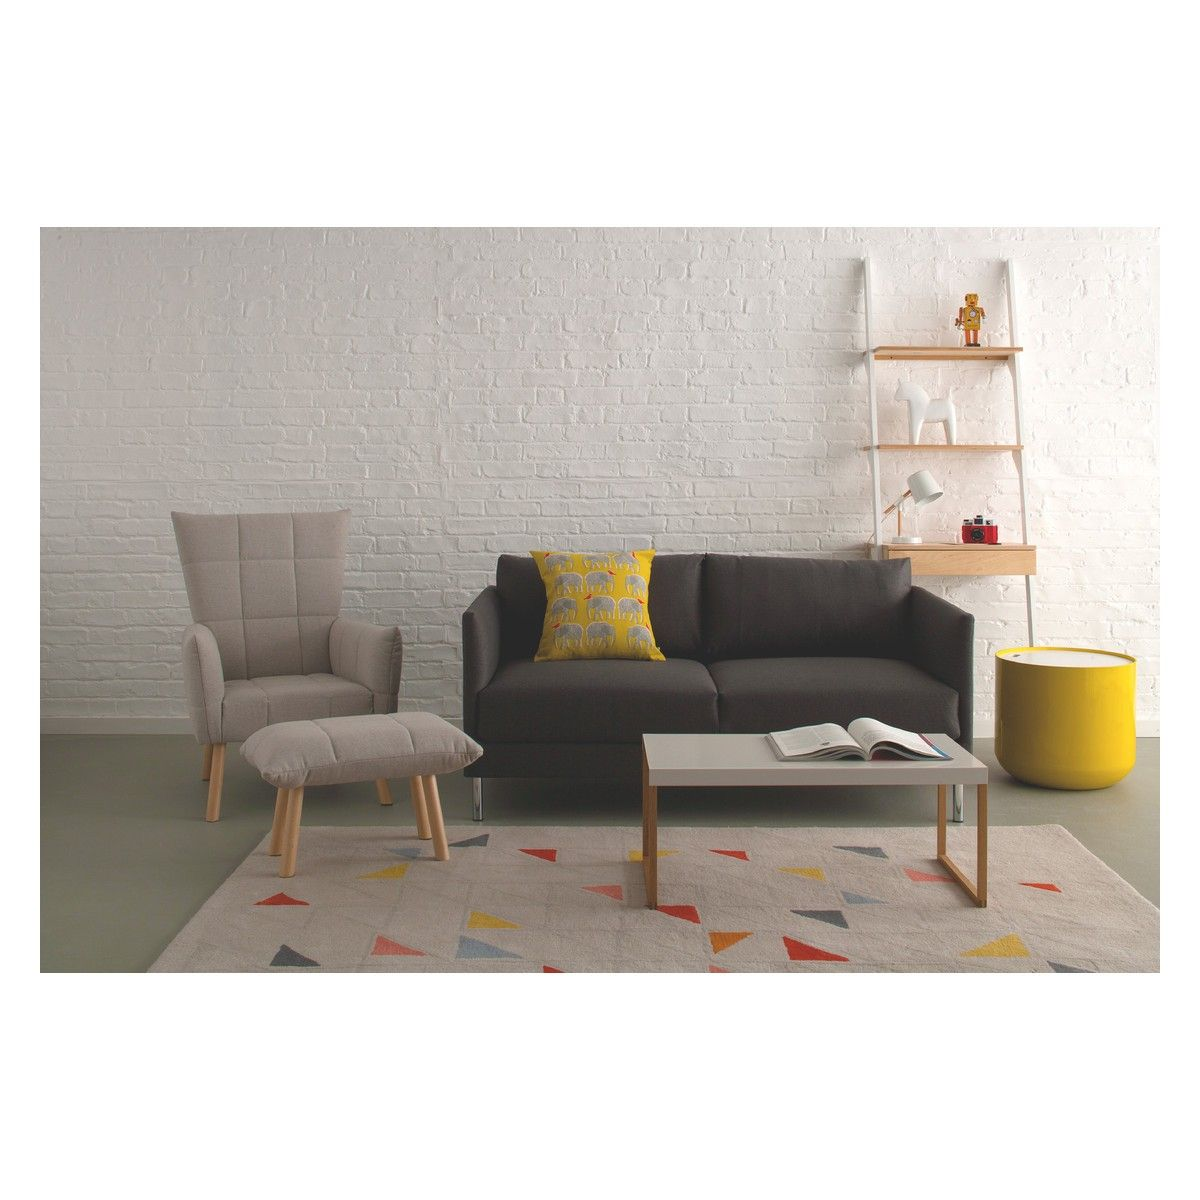 Sofas Habitat hyde charcoal fabric 2 seater sofa wooden legs wooden leg grey